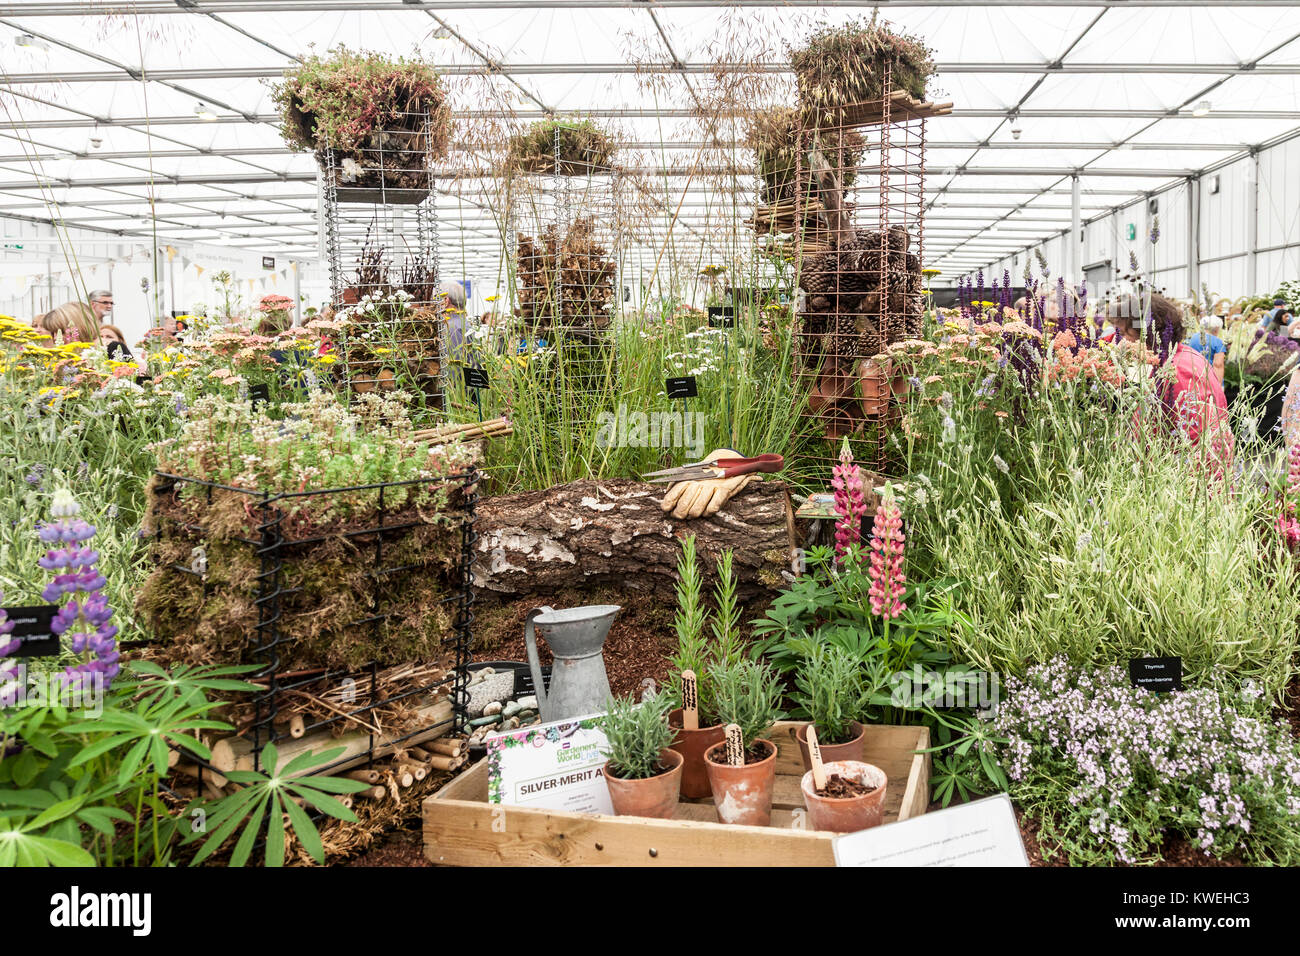 Silver-Merit award winning display of Plants for Pollinators by John Cullen Gardens at Gardeners' World Live - Stock Image